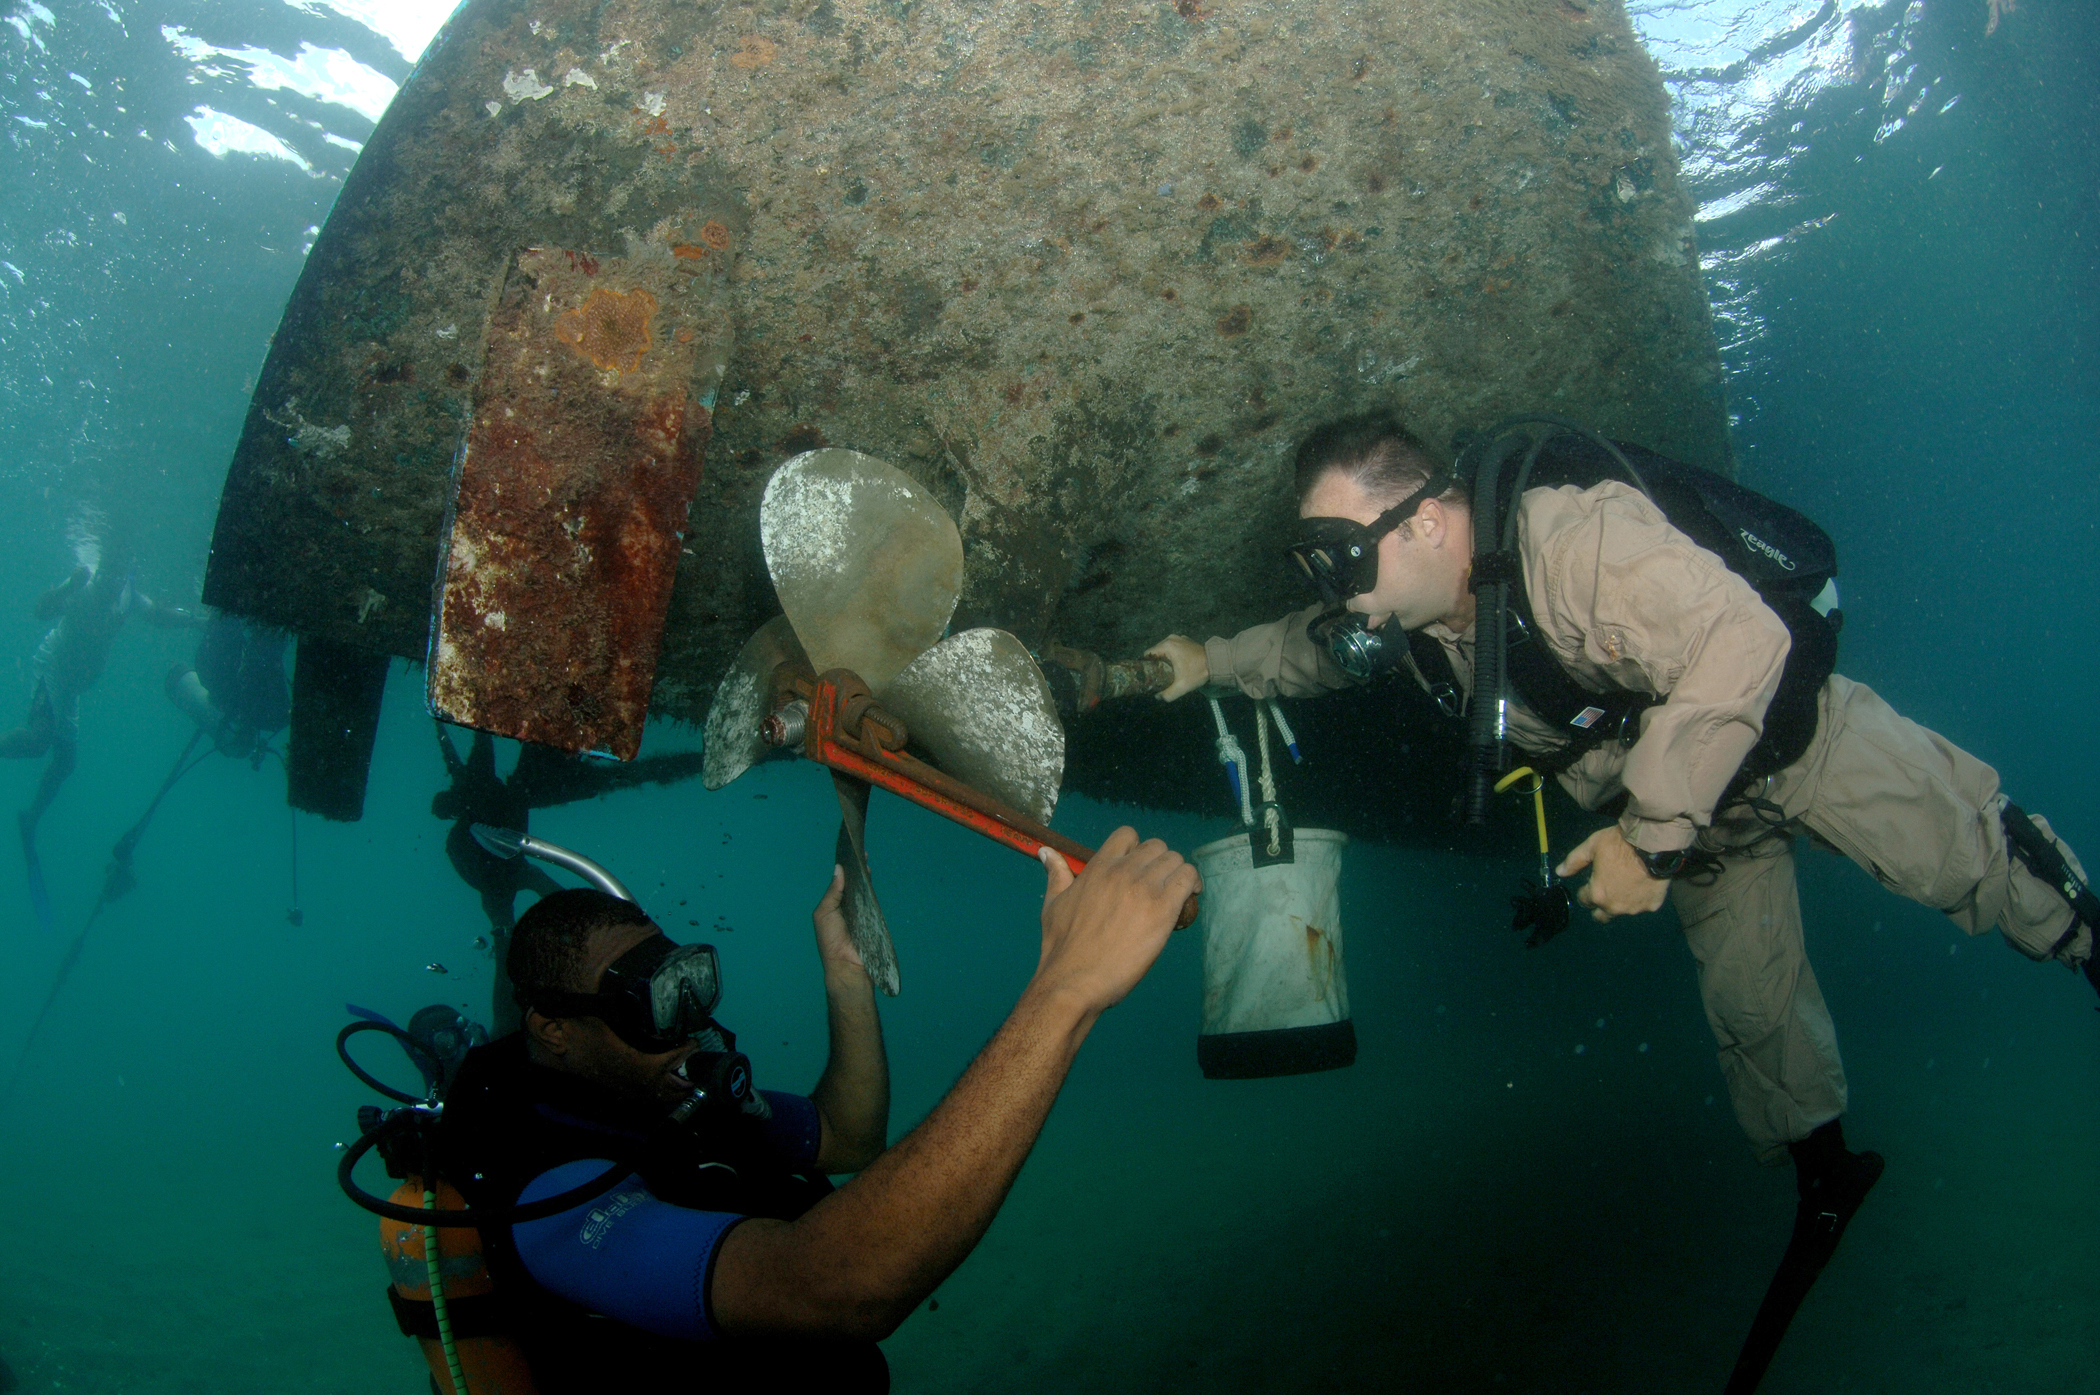 File:US Navy 080724-N-3093M-016 Senior Chief Diver Billy ...